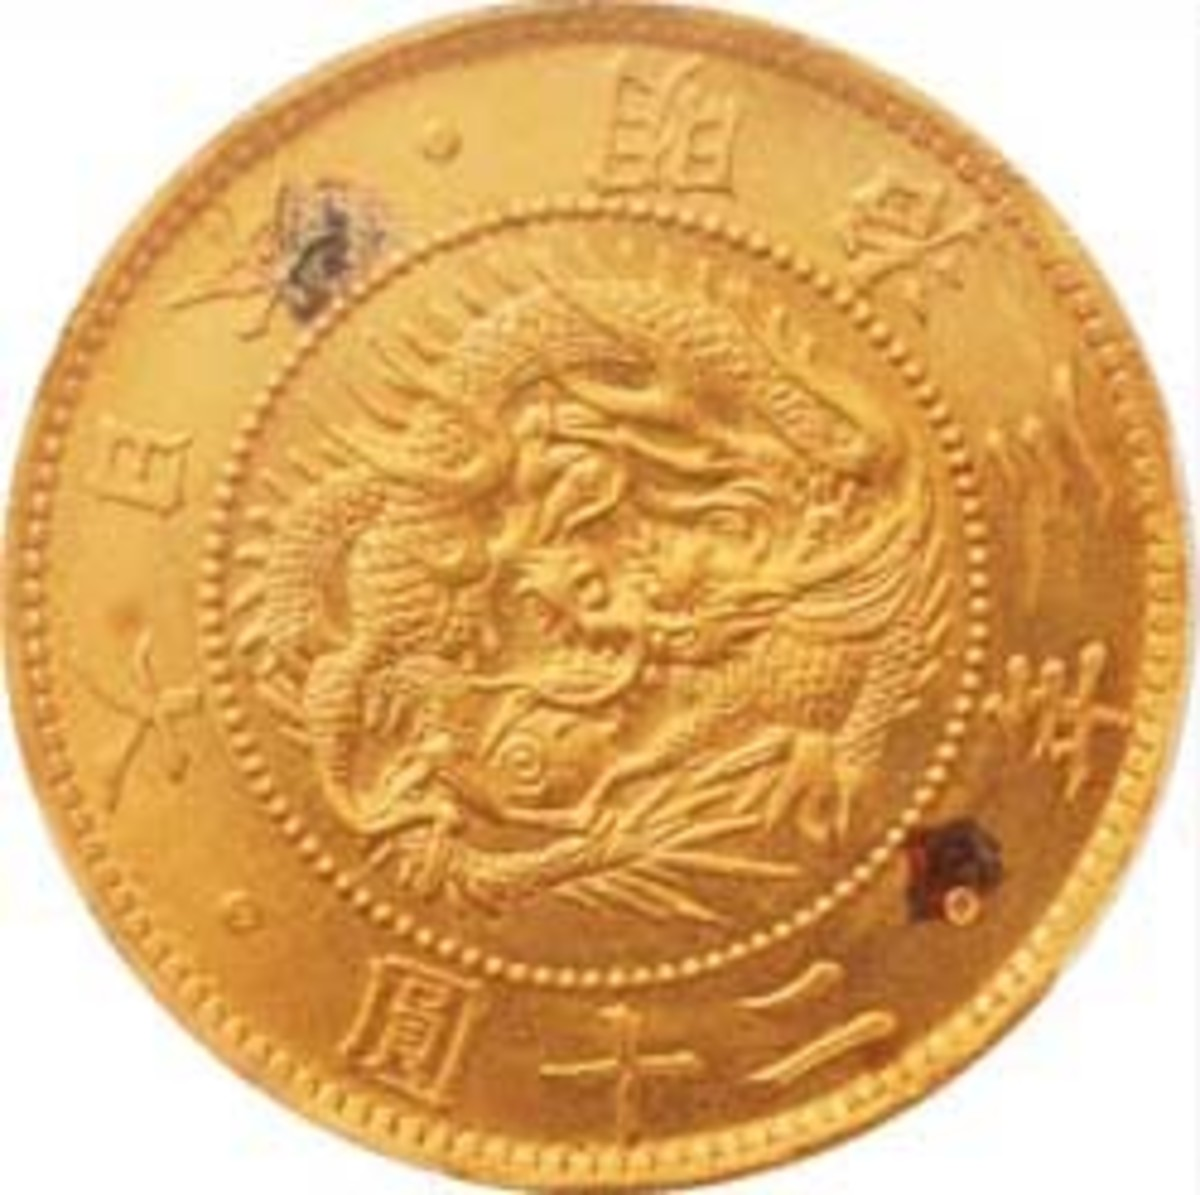 Year 3 (1870) 20 yen (Y-13) that sold for $46,085 in PCGS MS63 AU at Spink-Taisei April sale in Tokyo. (Image courtesy and © Spink)